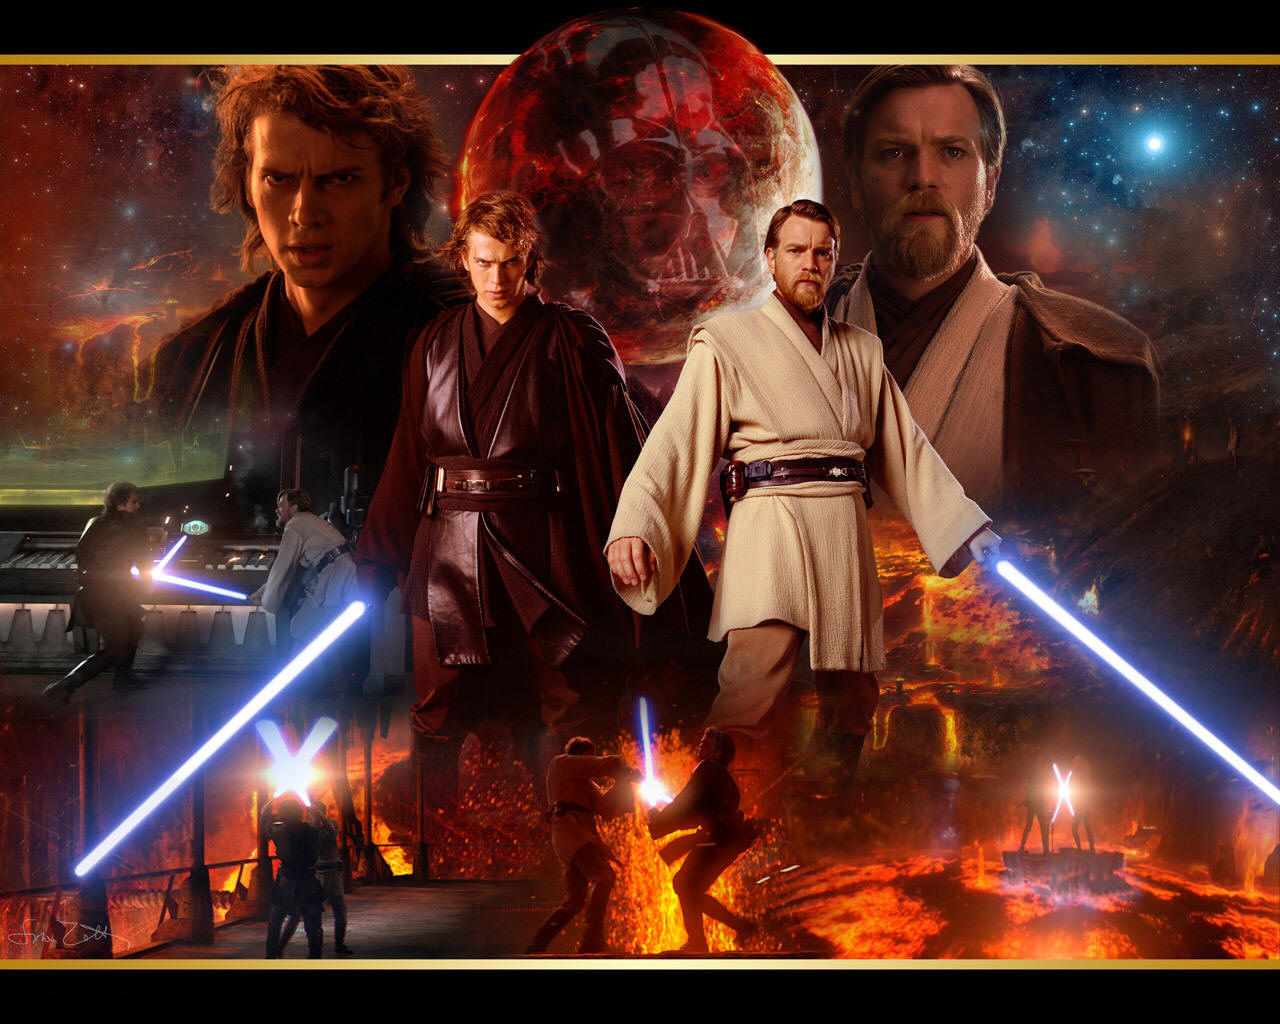 Anakin And Obi Wan Star Wars Revenge Of The Sith Wallpaper